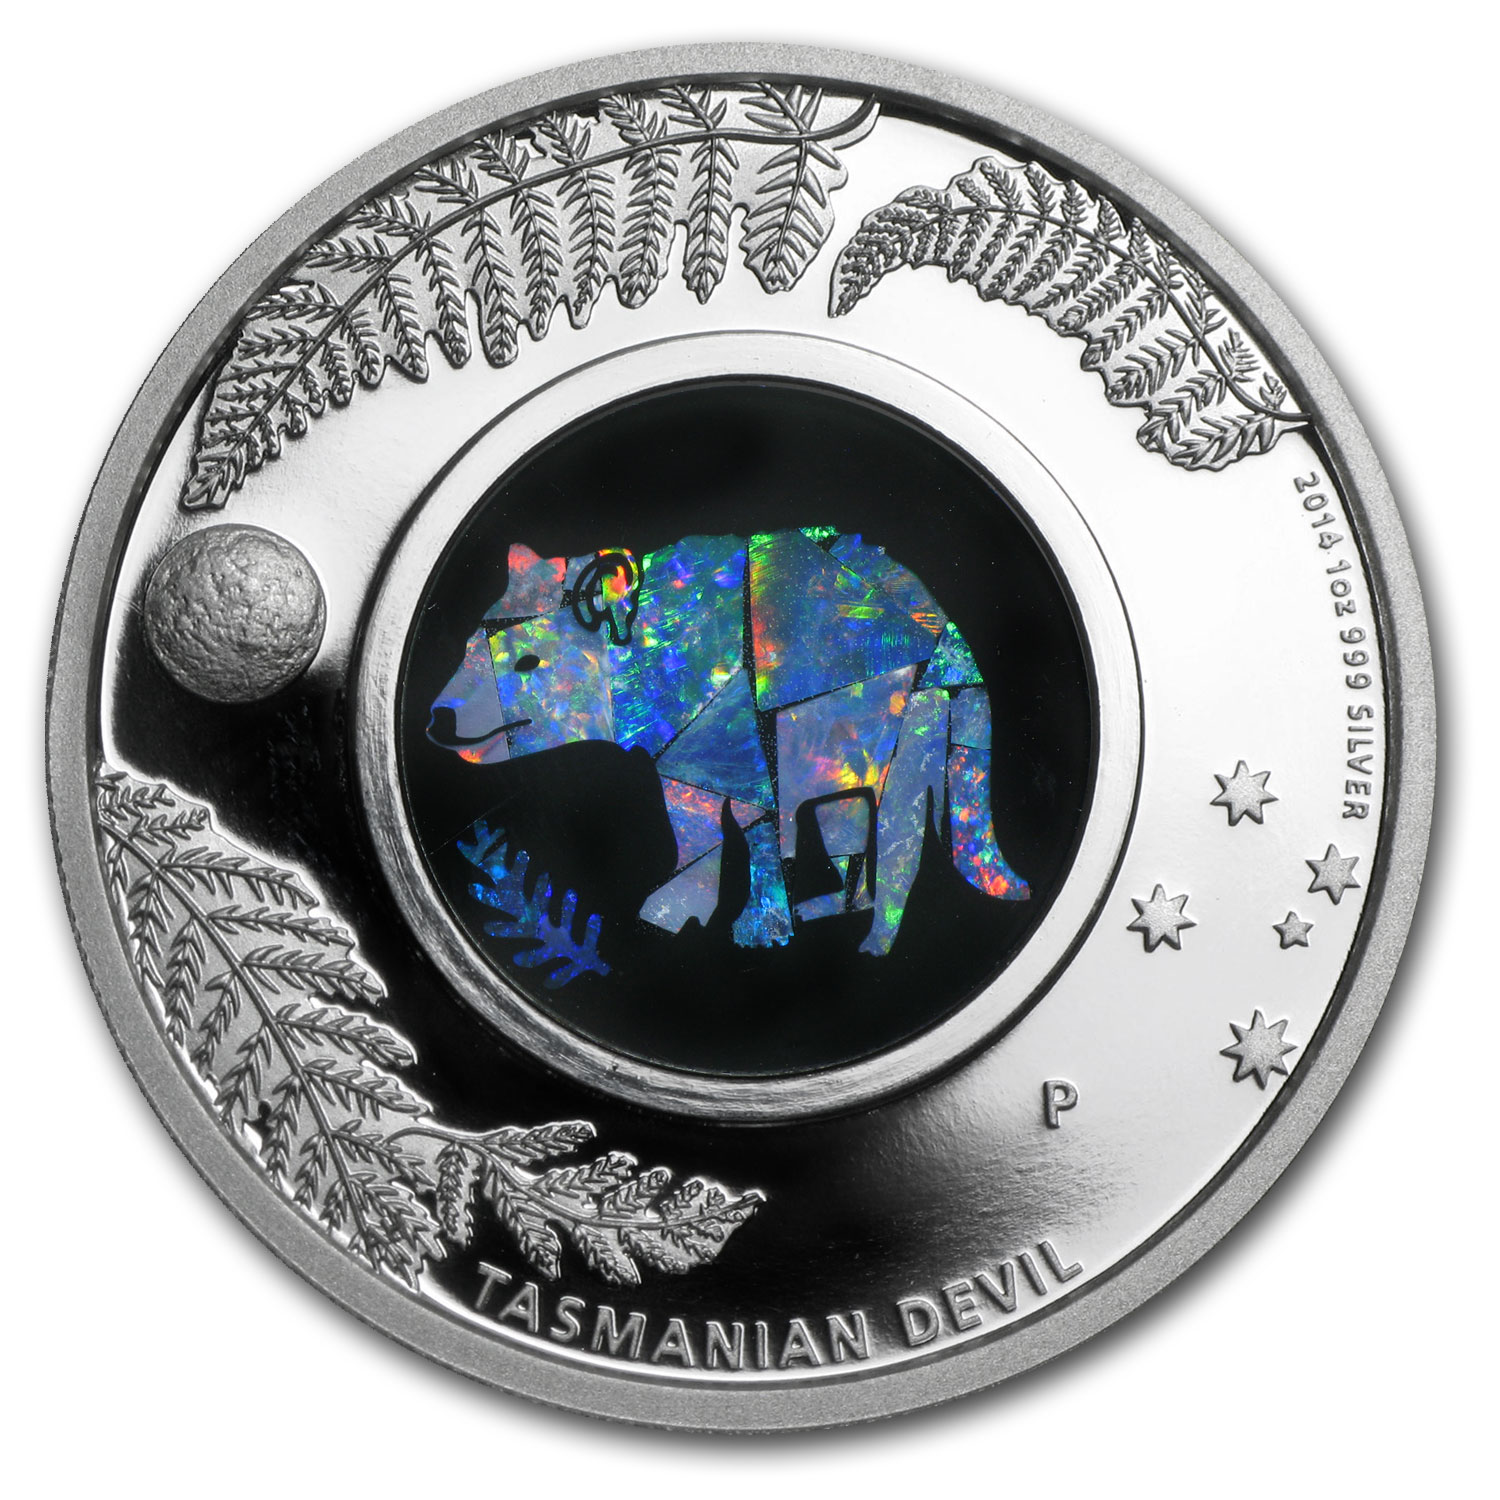 2014 1 oz Proof Silver Tasmanian Devil - Australian Opal Series